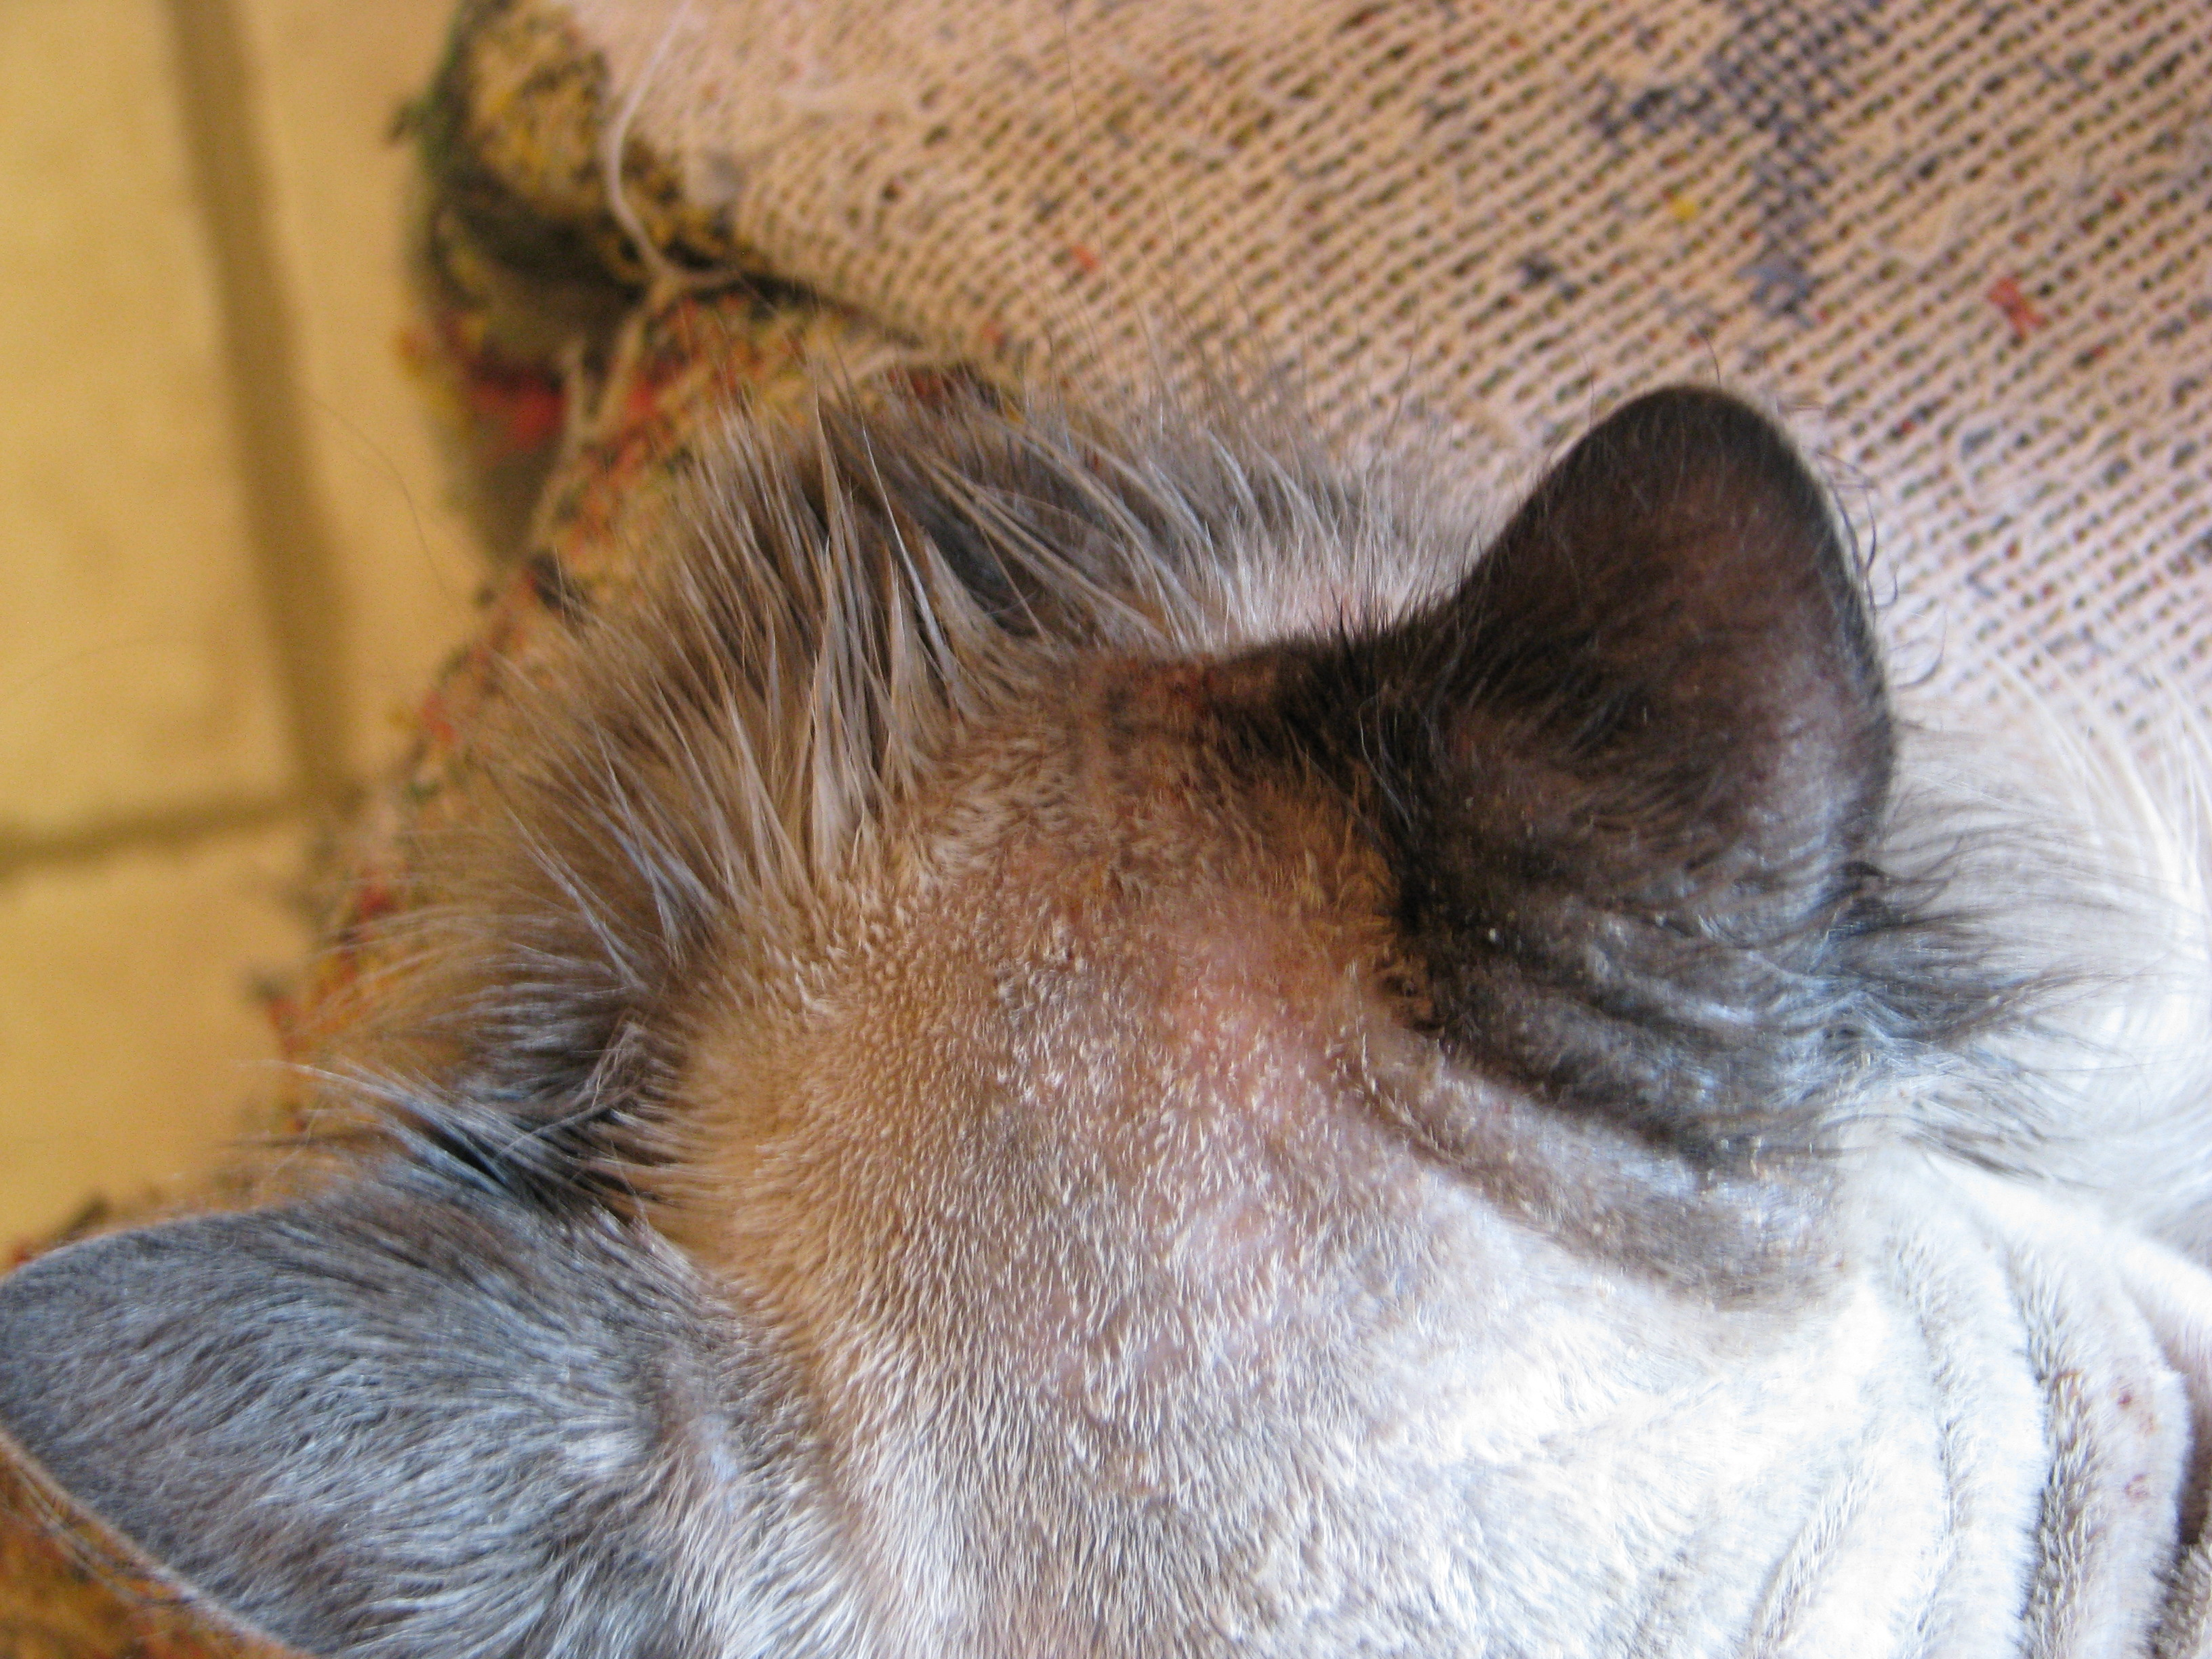 skin lesions on a cat